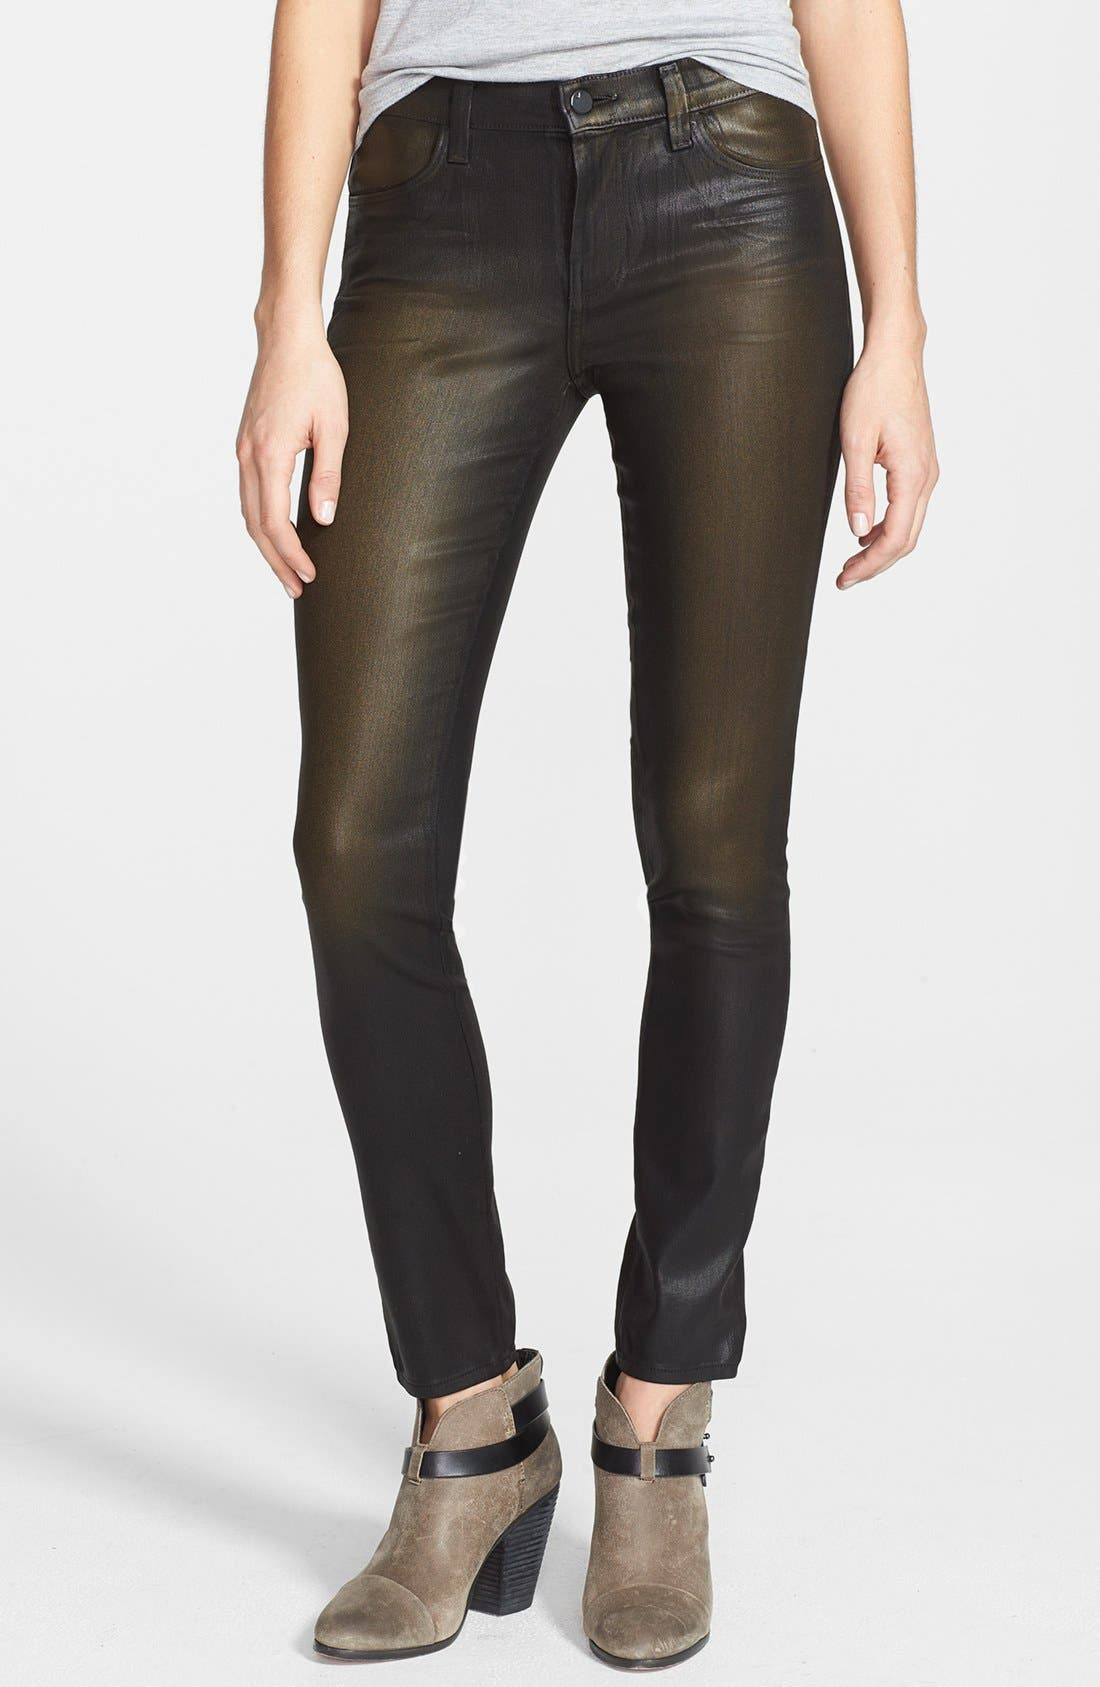 Alternate Image 1 Selected - J Brand '620' Overdyed Skinny Leg Jeans (Diffused Gold)